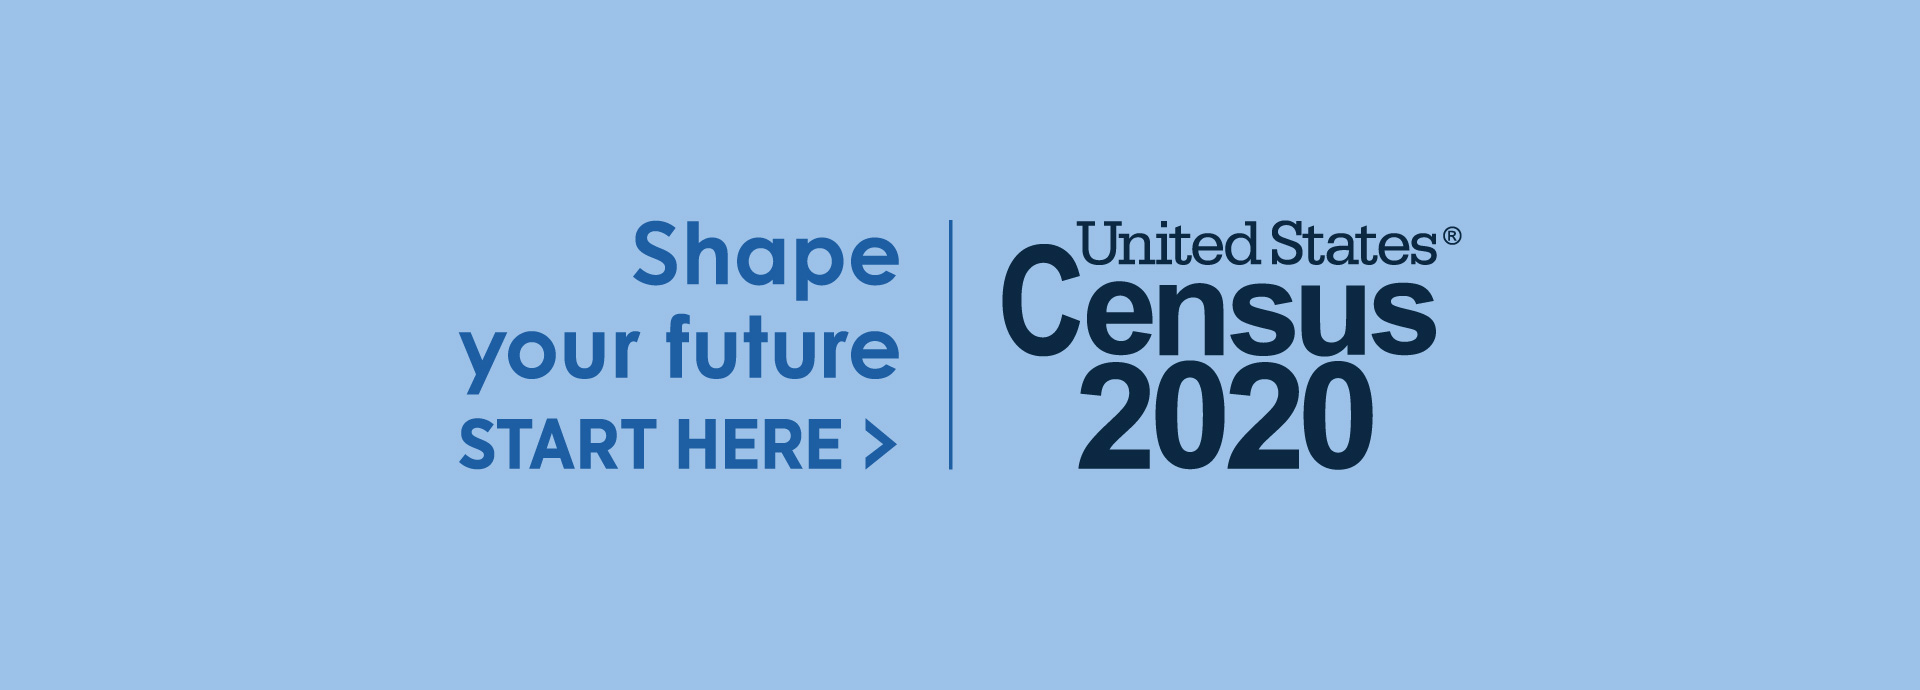 census2020-home-slide